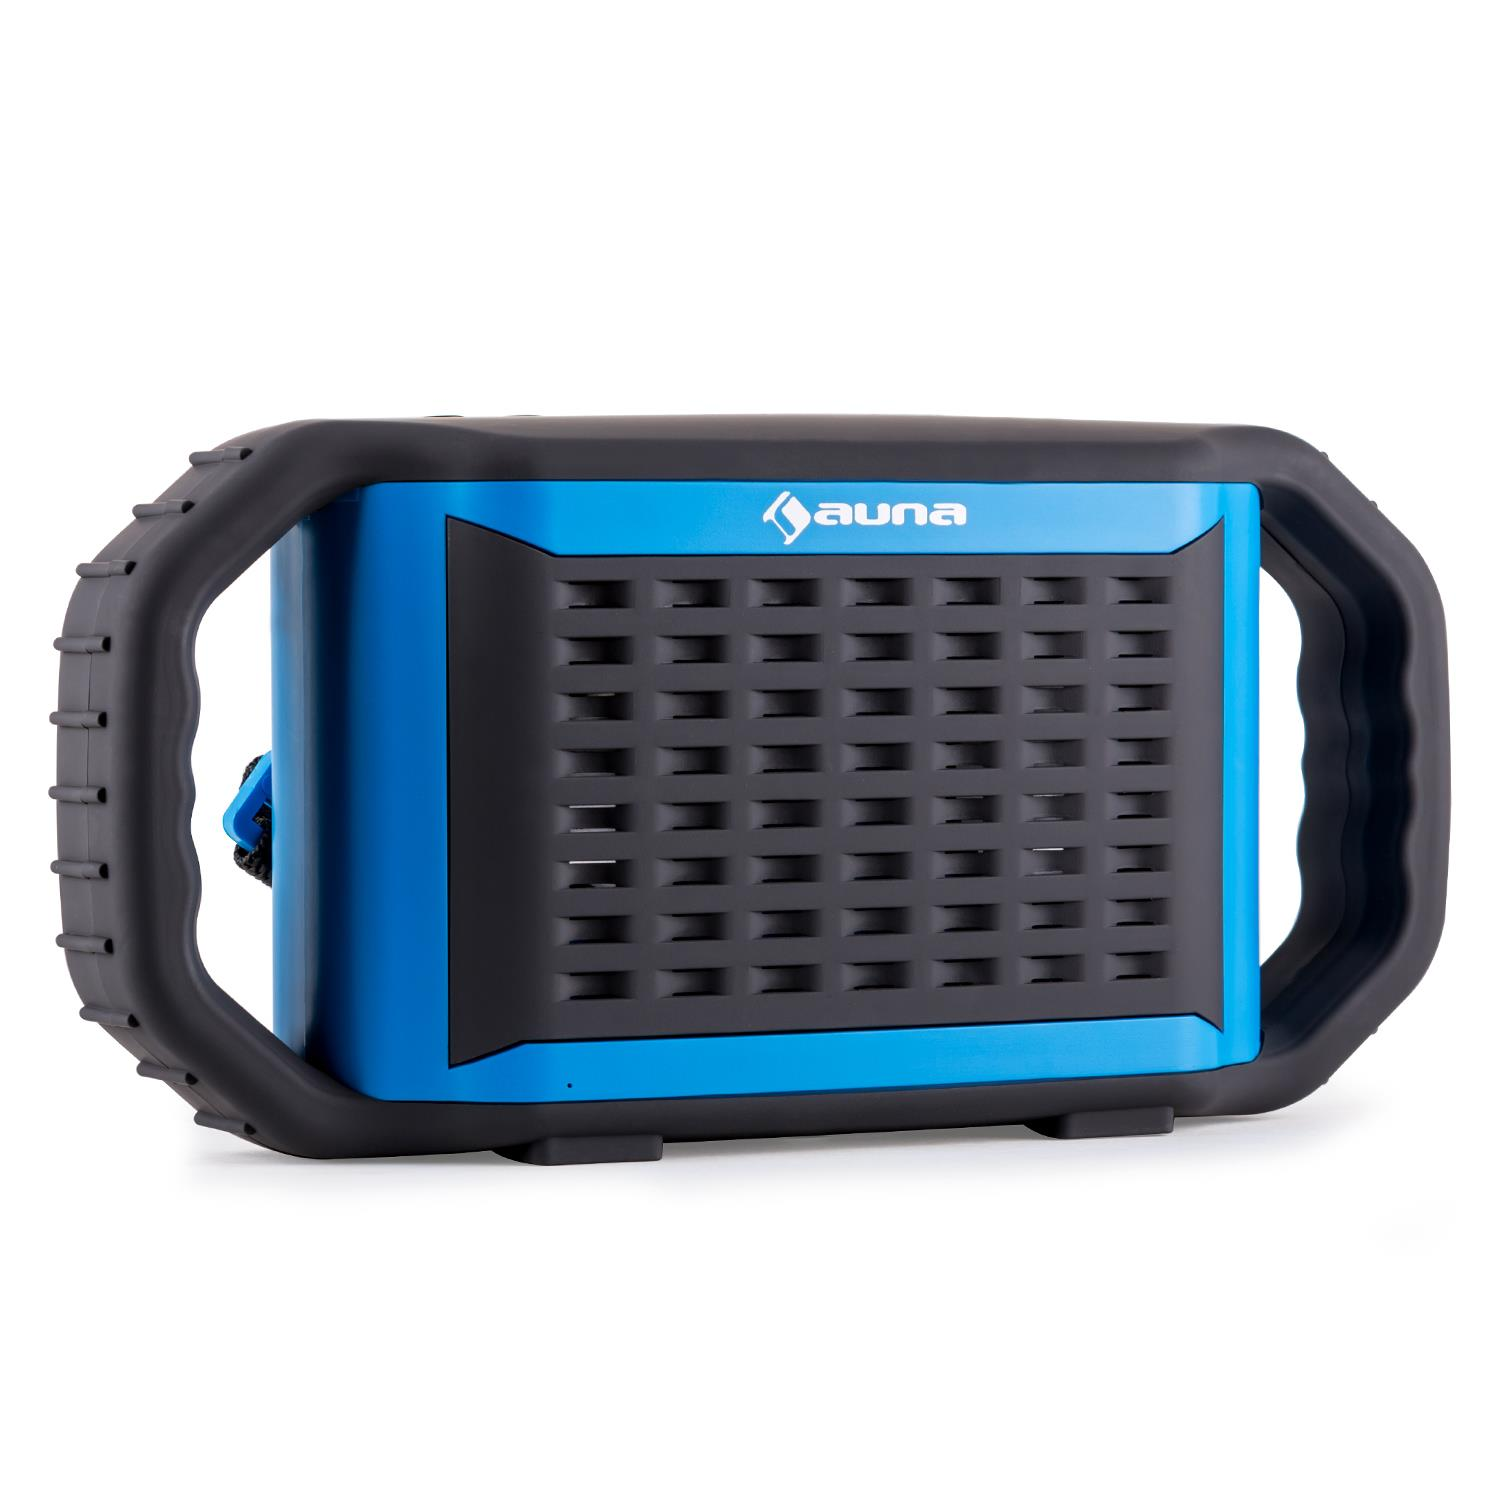 ENCEINTE-NOMADE-SANS-FIL-BLUETOOTH-AUX-STREAMING-AUDIO-SMARTPHONE-TABLETTE-BLEU